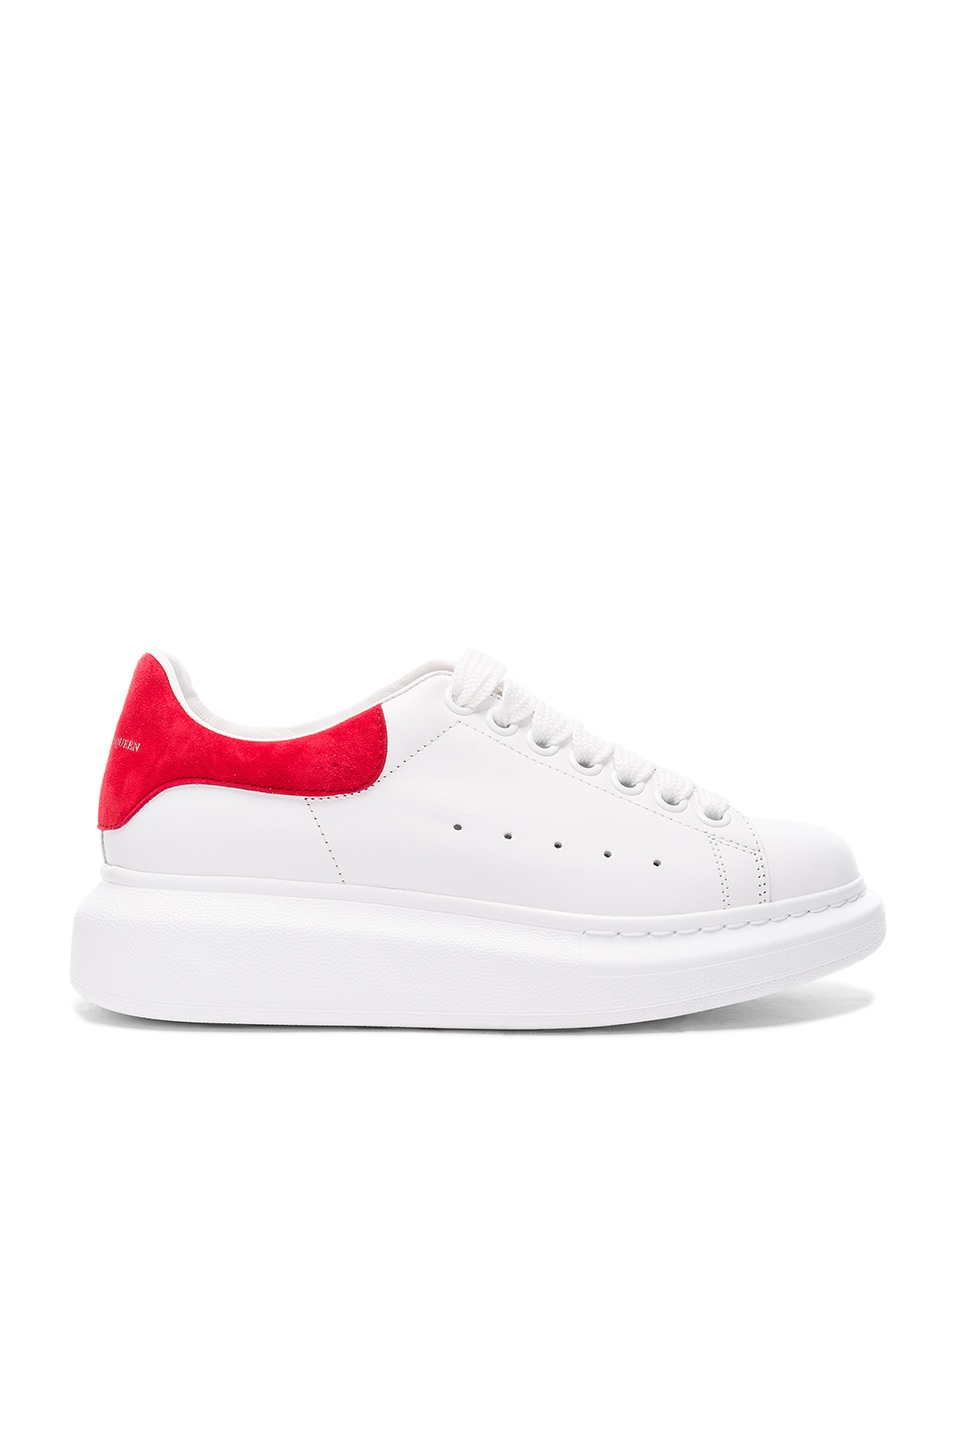 Image 1 of Alexander McQueen Leather Platform Sneakers in White & Crimson